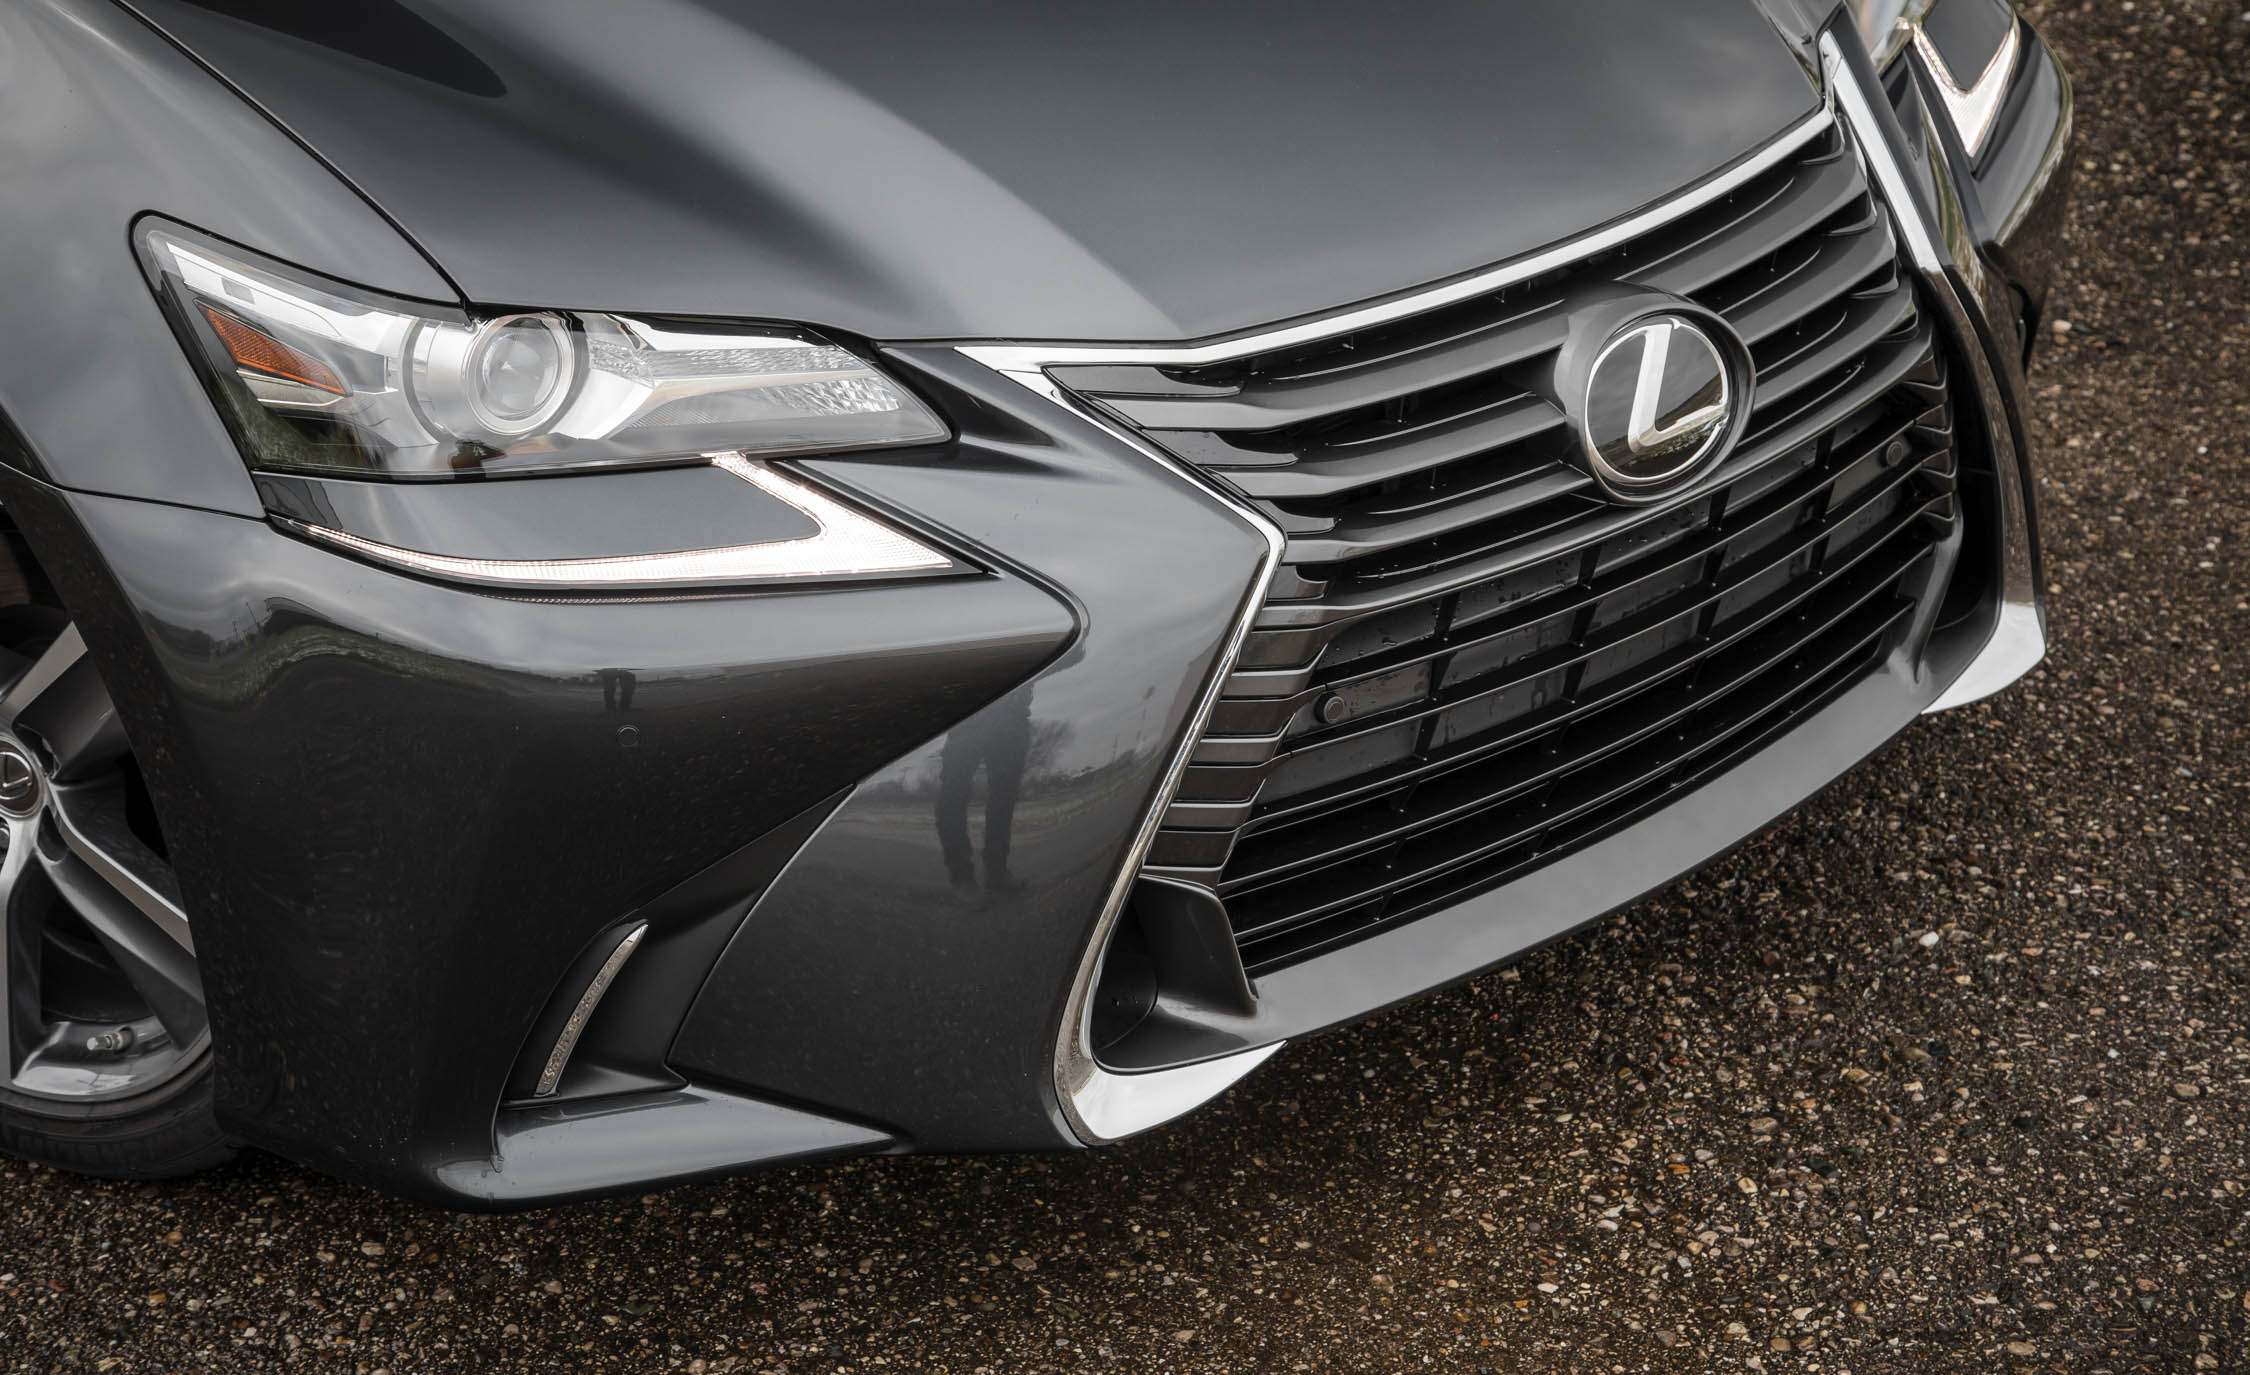 2017 Lexus GS200t Exterior View Grille And Bumper (Photo 8 of 26)